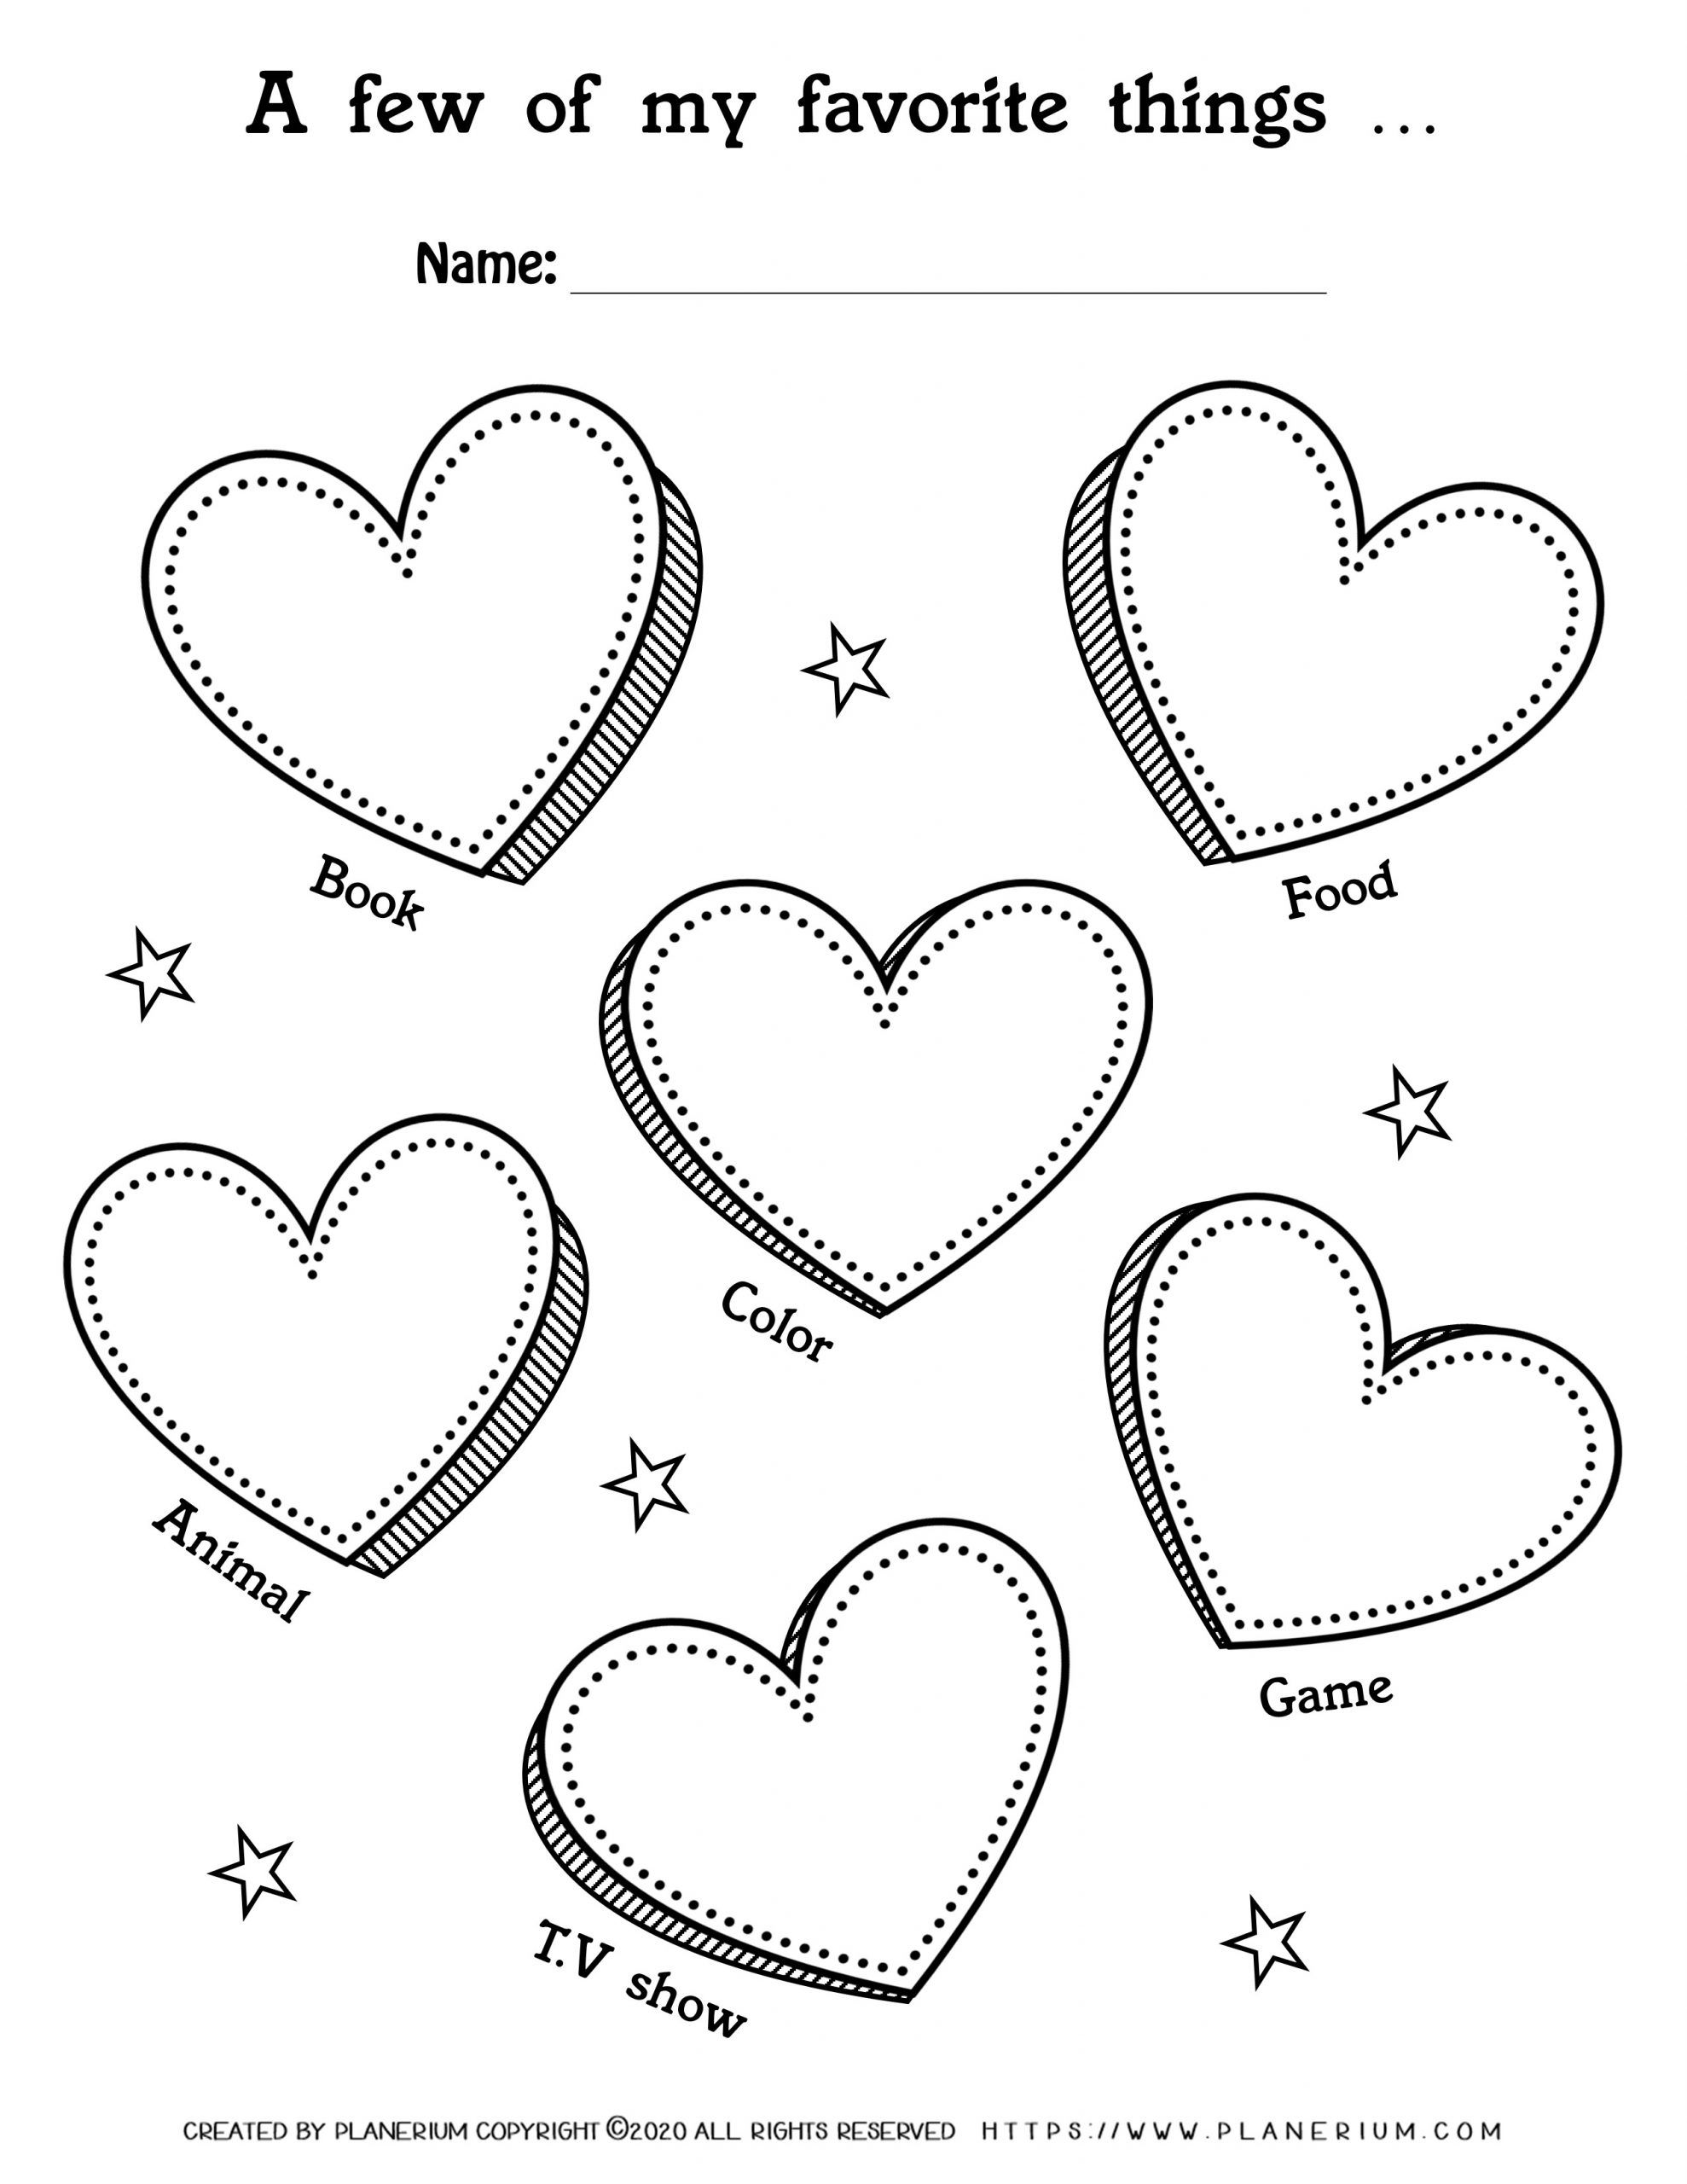 Valentines Day Worksheet - Hearts My favorite things